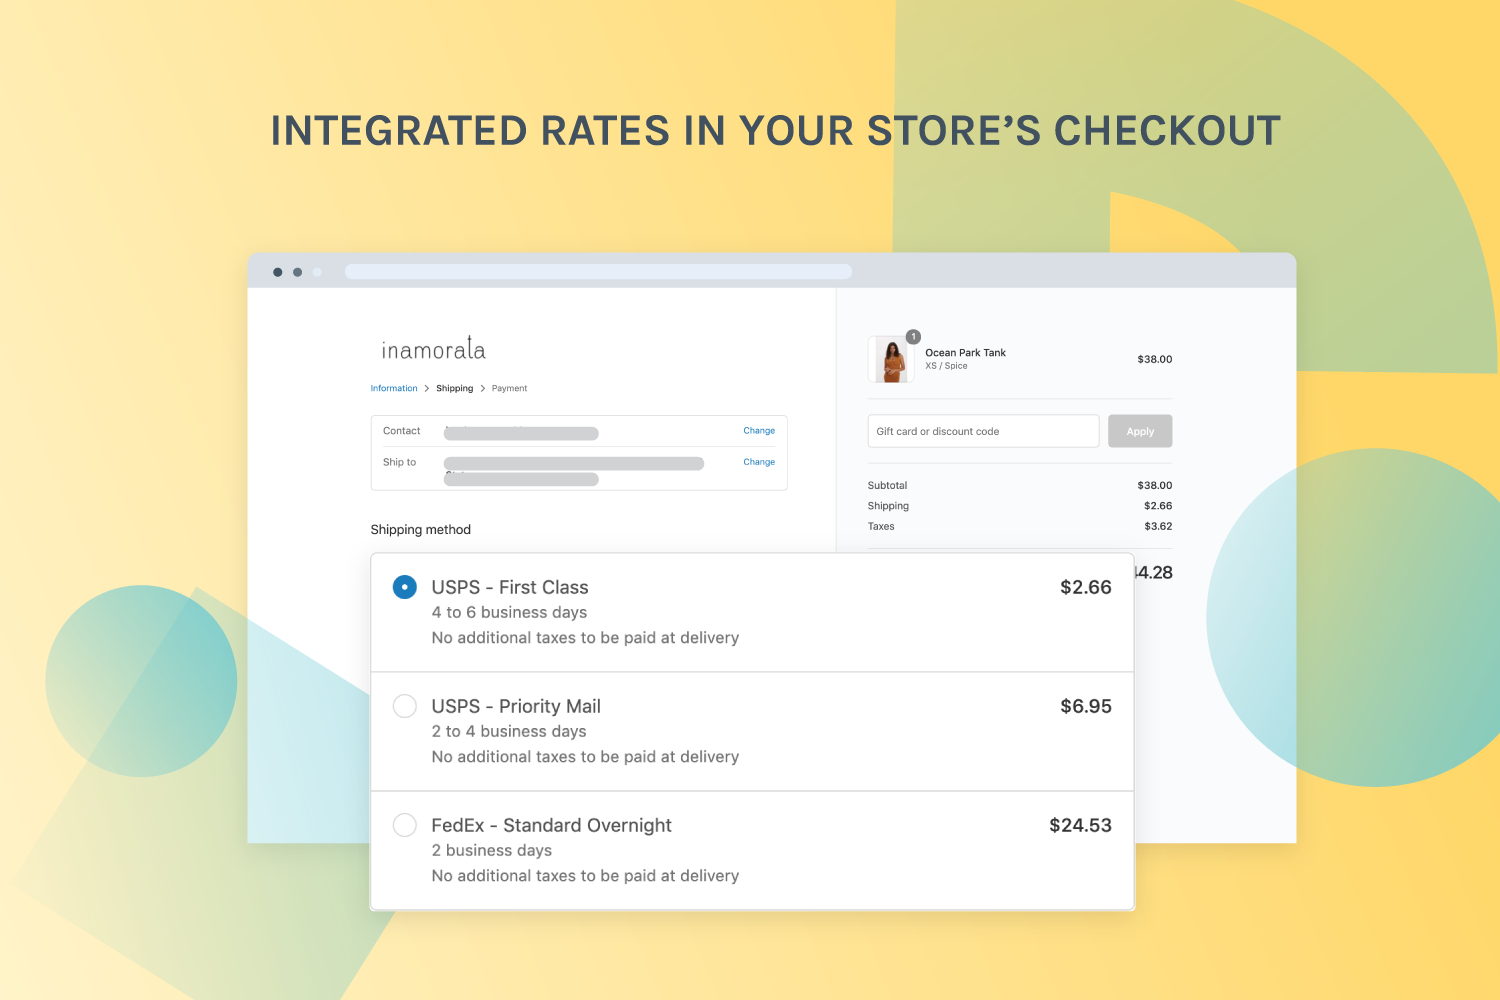 Integrated rates in your store's checkout